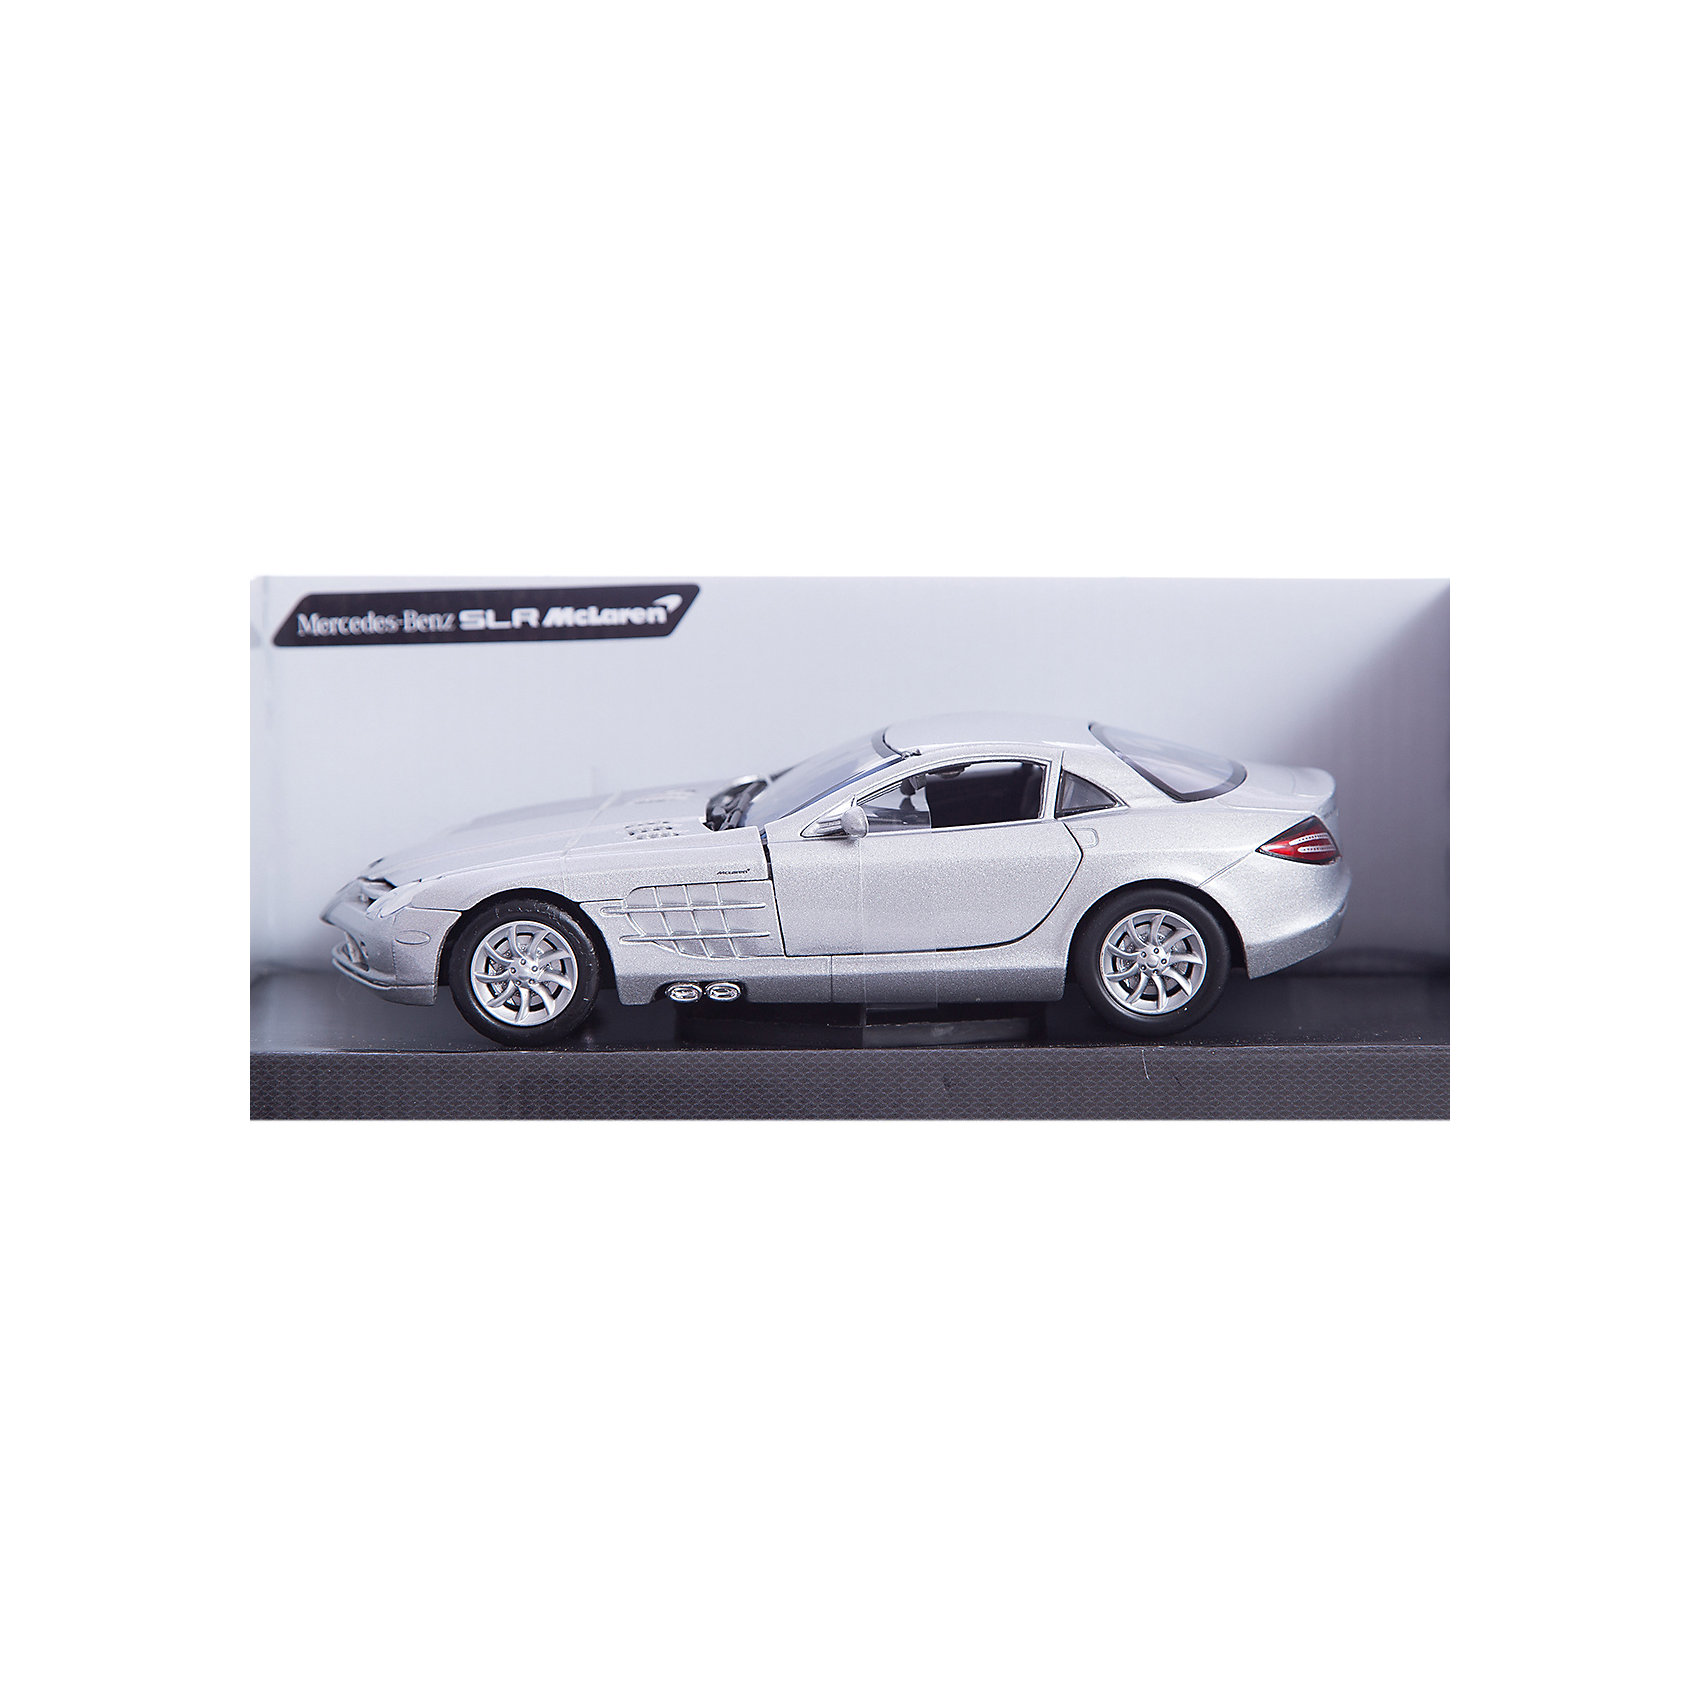 - Машина MERCEDES-BENZ SLR MCLAREN, 1:24, в ассортименте fujimi 1 24 rs 66 mclaren f1 12573 car model kit